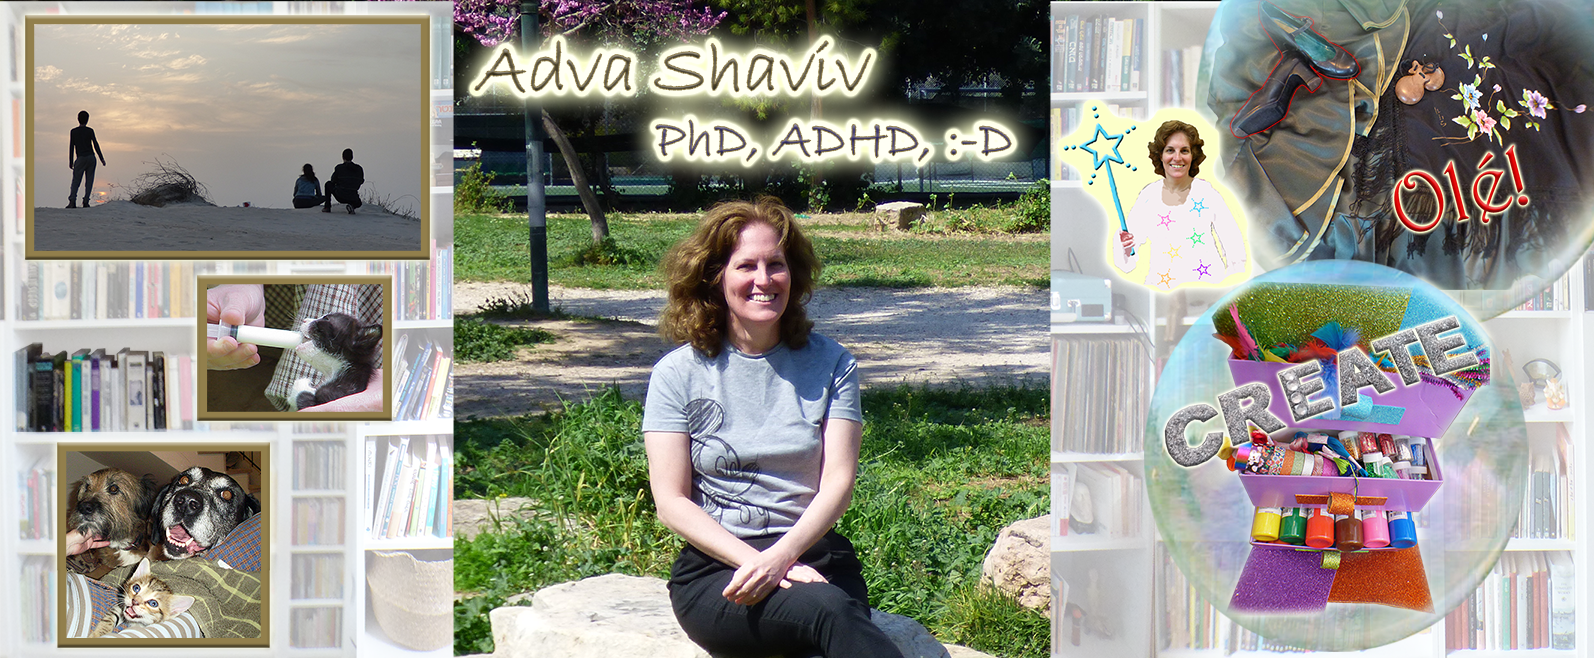 Adva Shaviv - about and contact